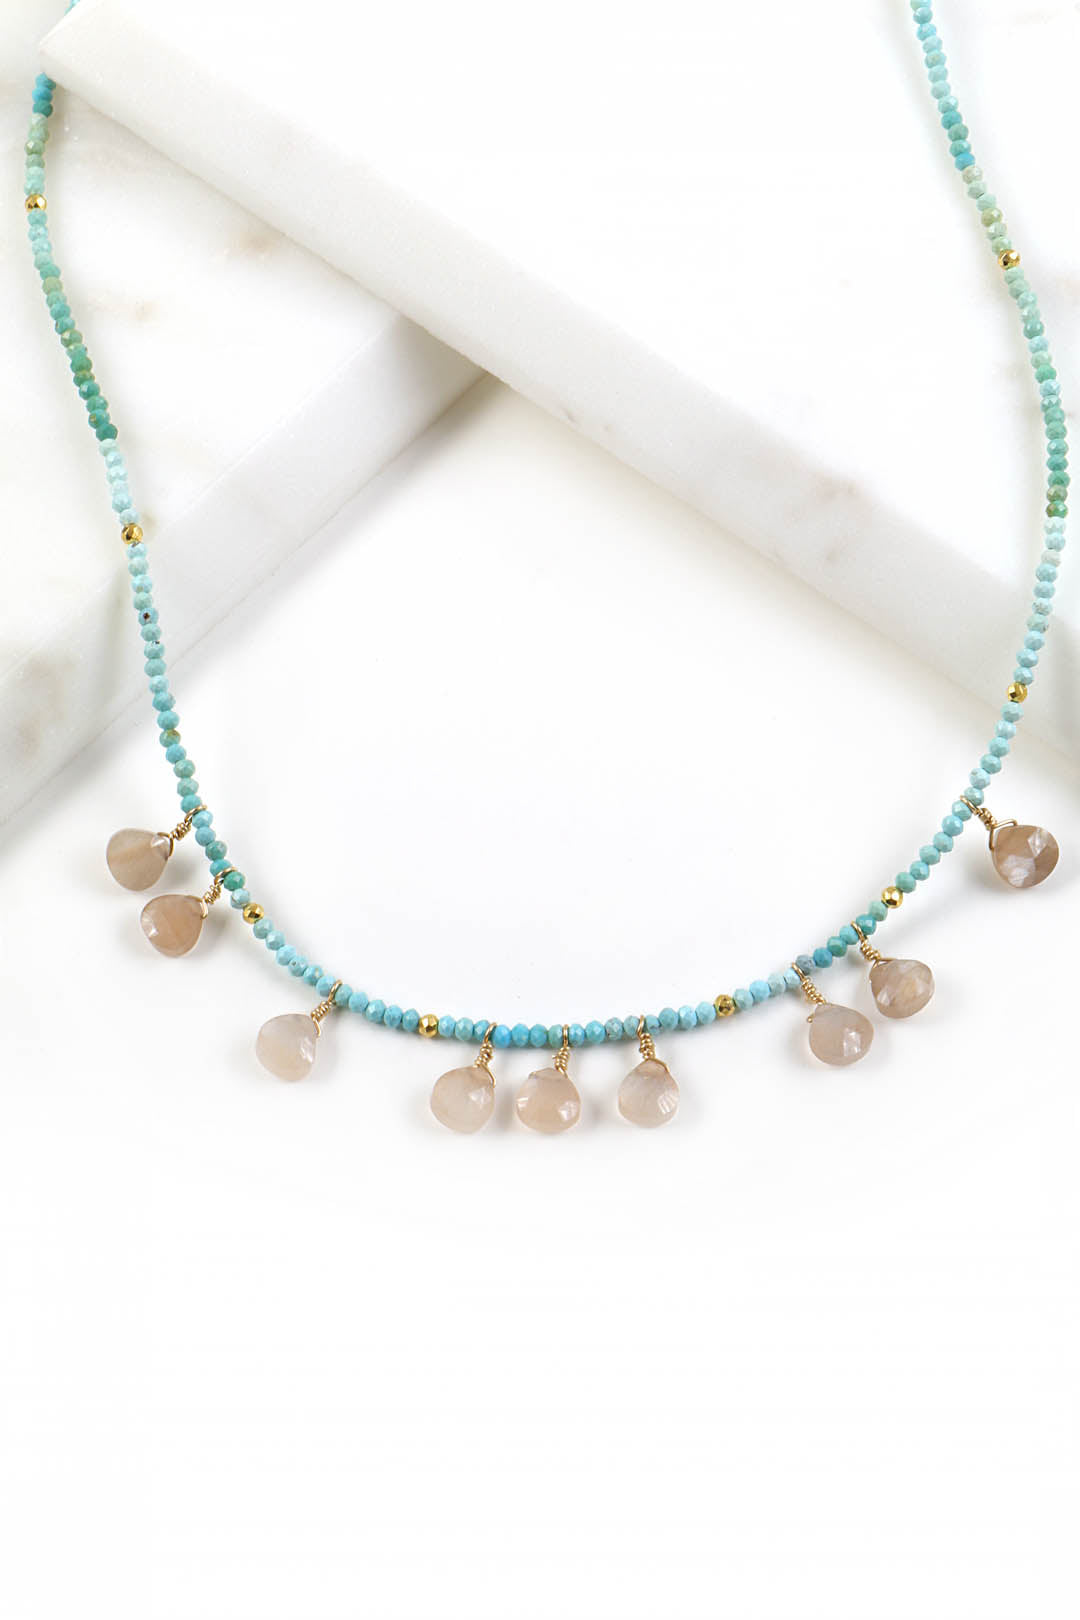 Turquoise Peach Moonstone Necklace